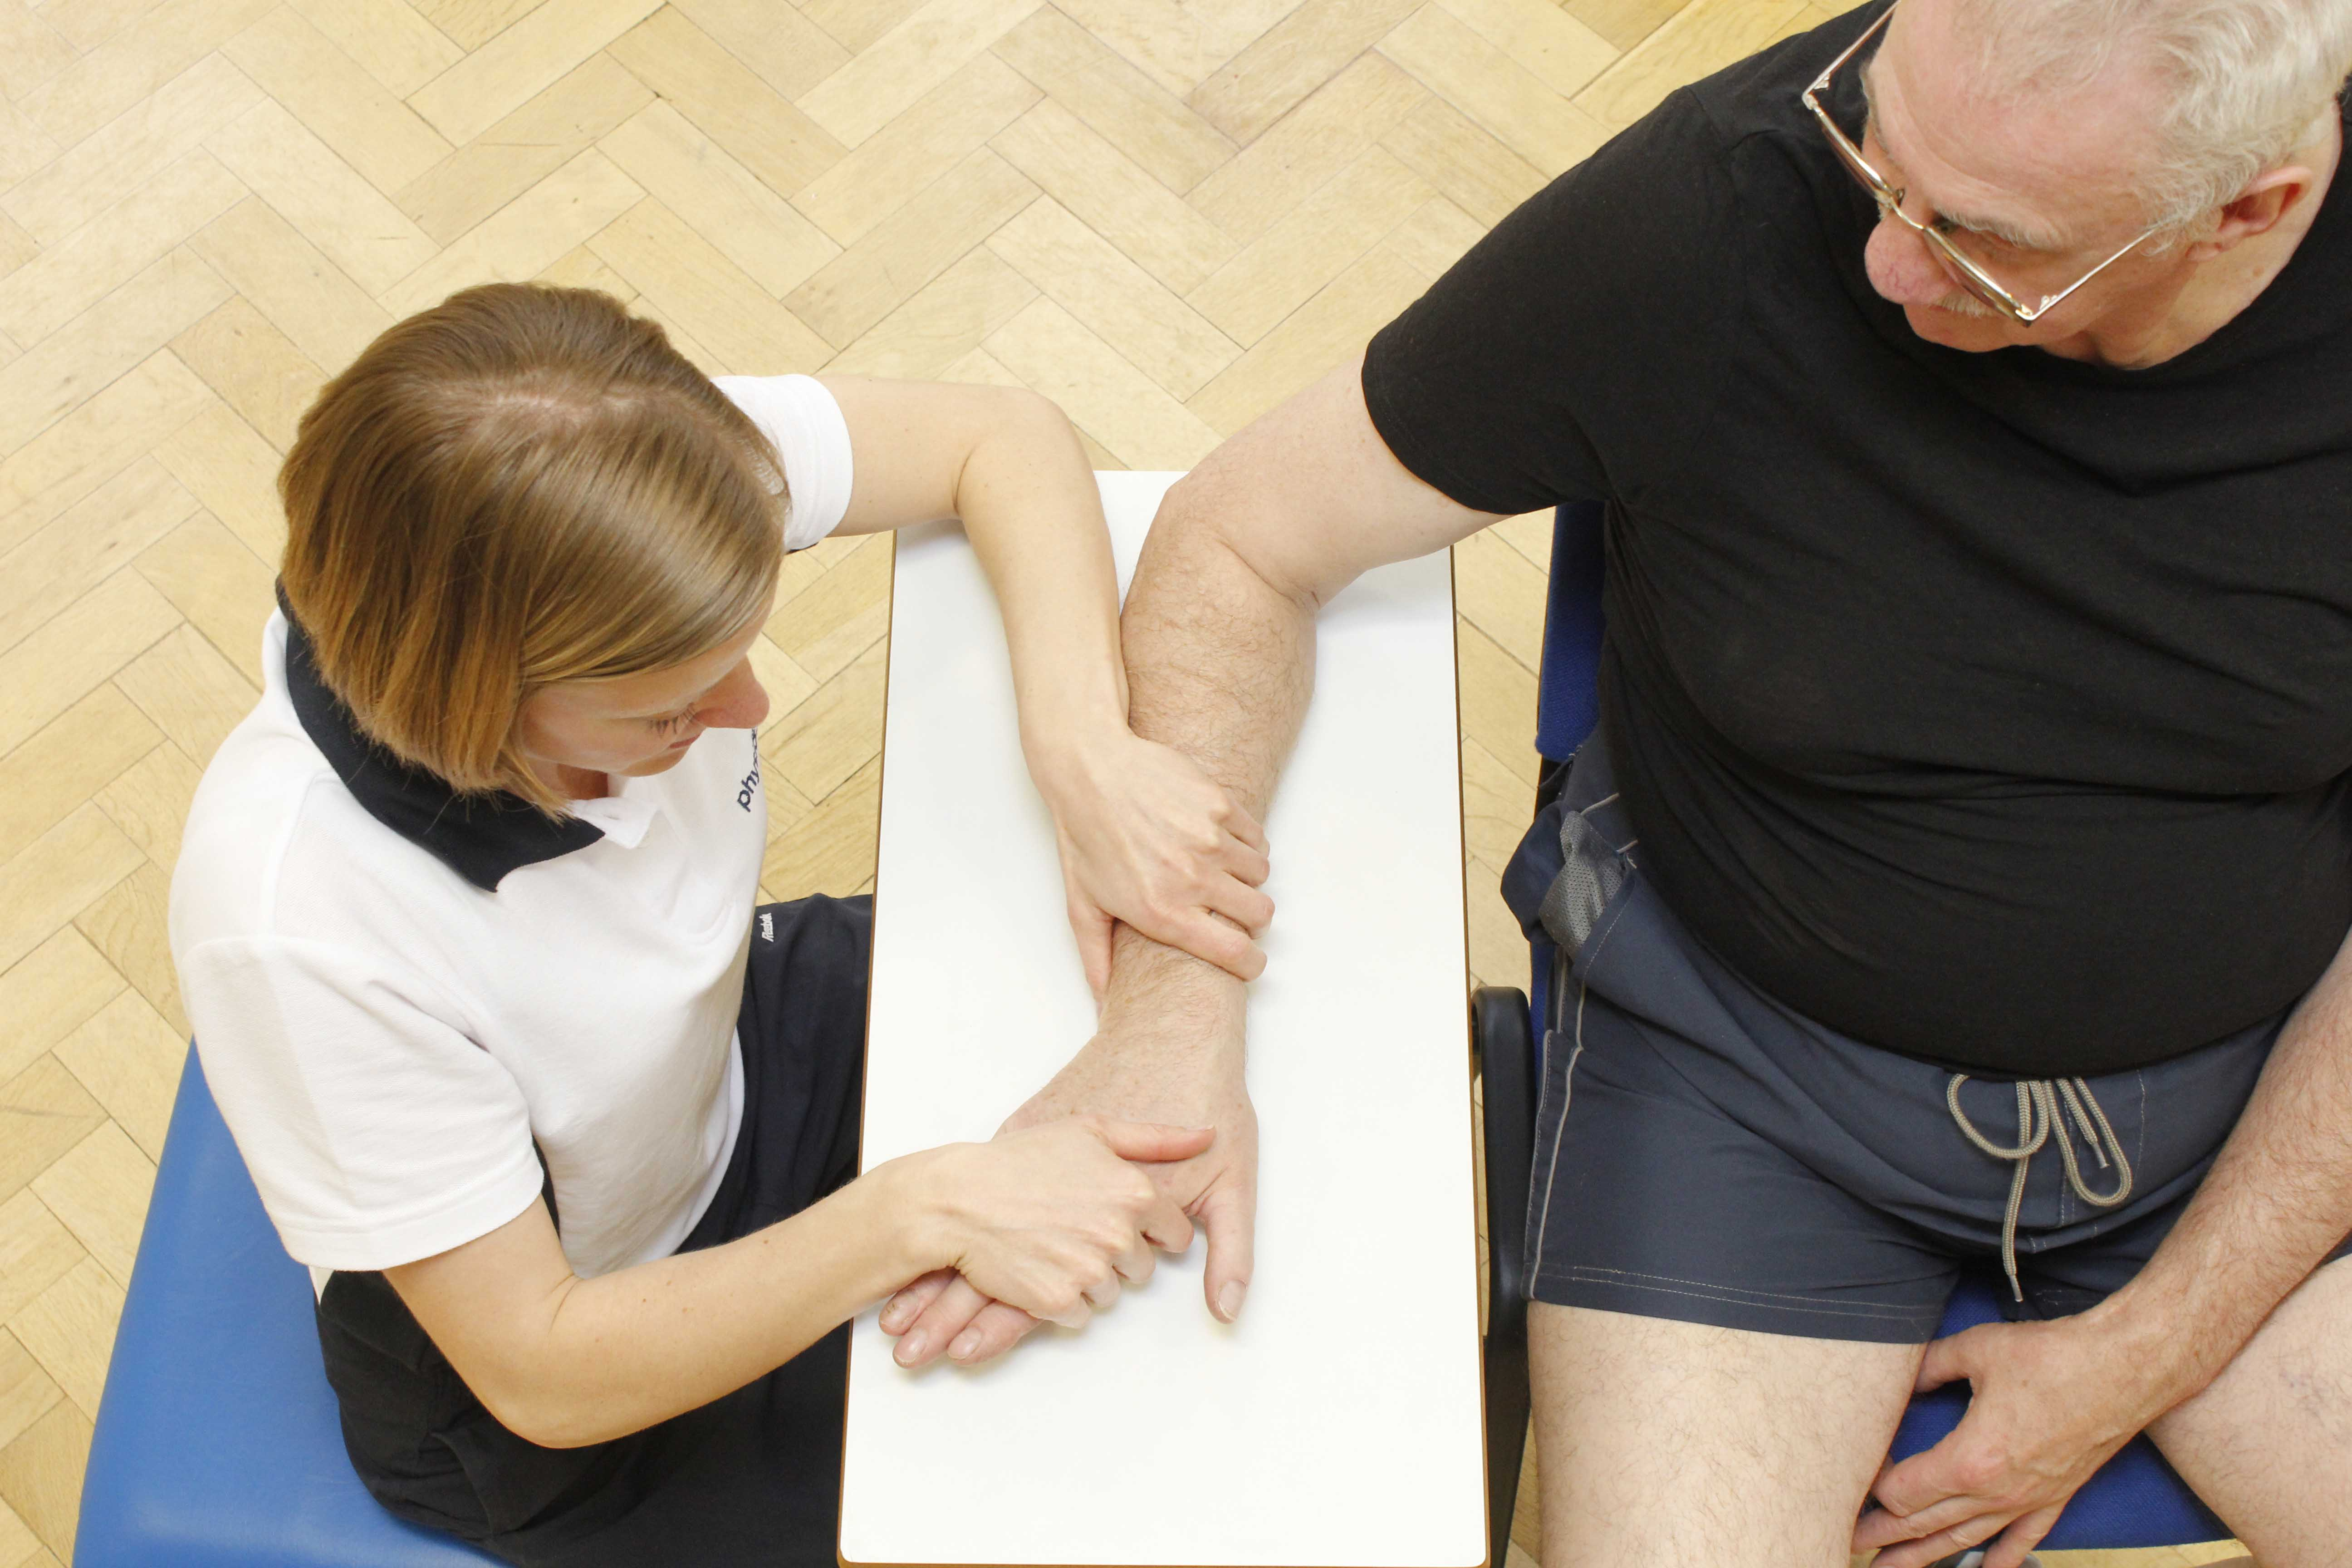 Hand and wrist stretches and mobilisations by experienced MSK physiotherapist